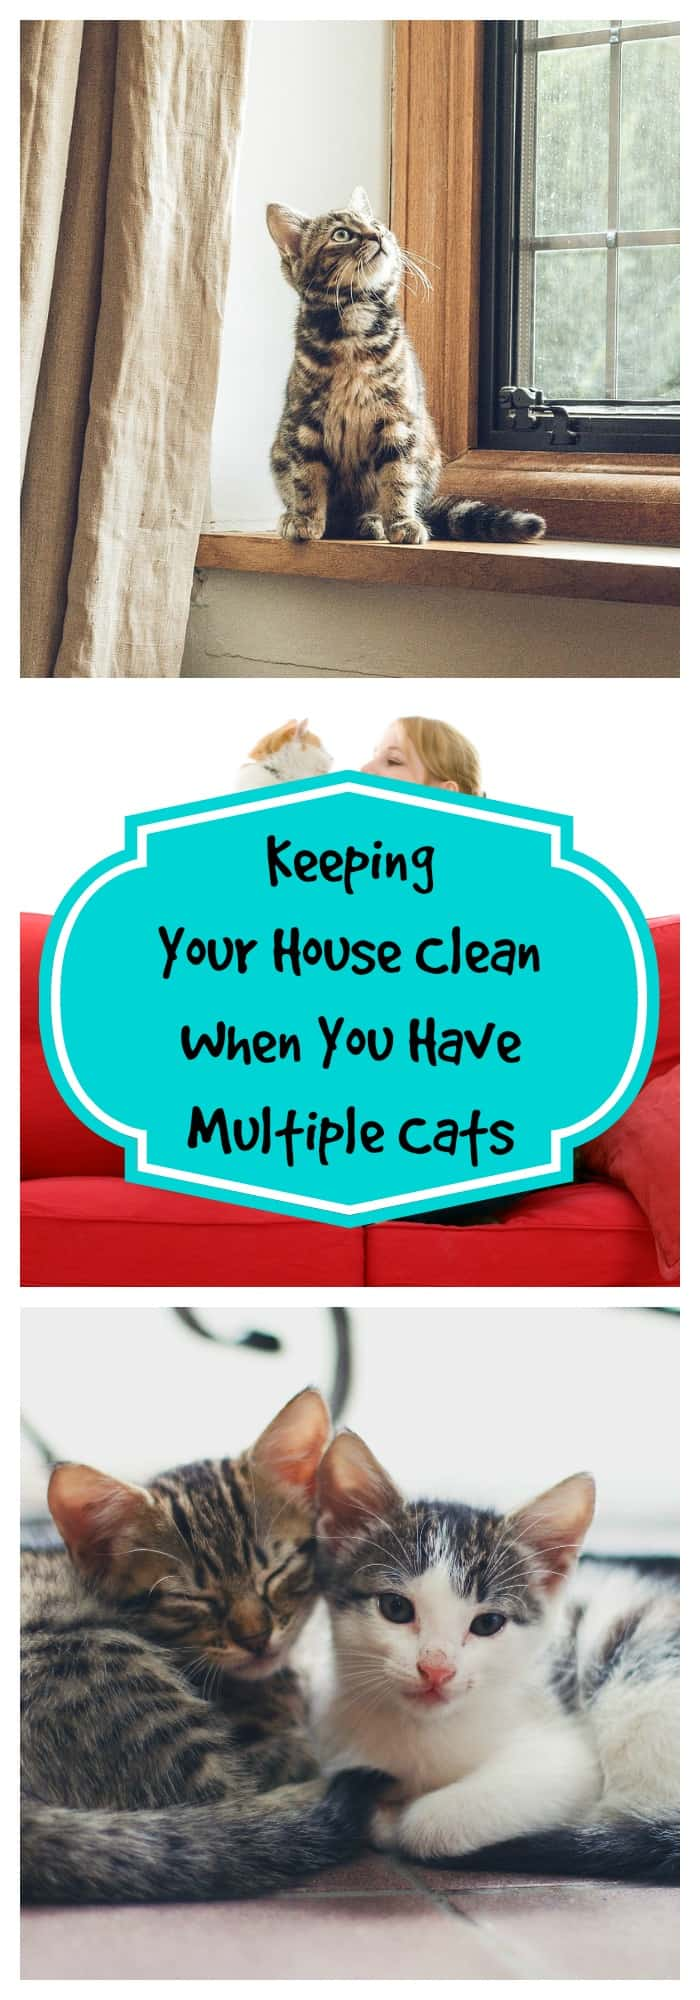 Pets-Keeping Your House Clean When You Have Multiple Cats